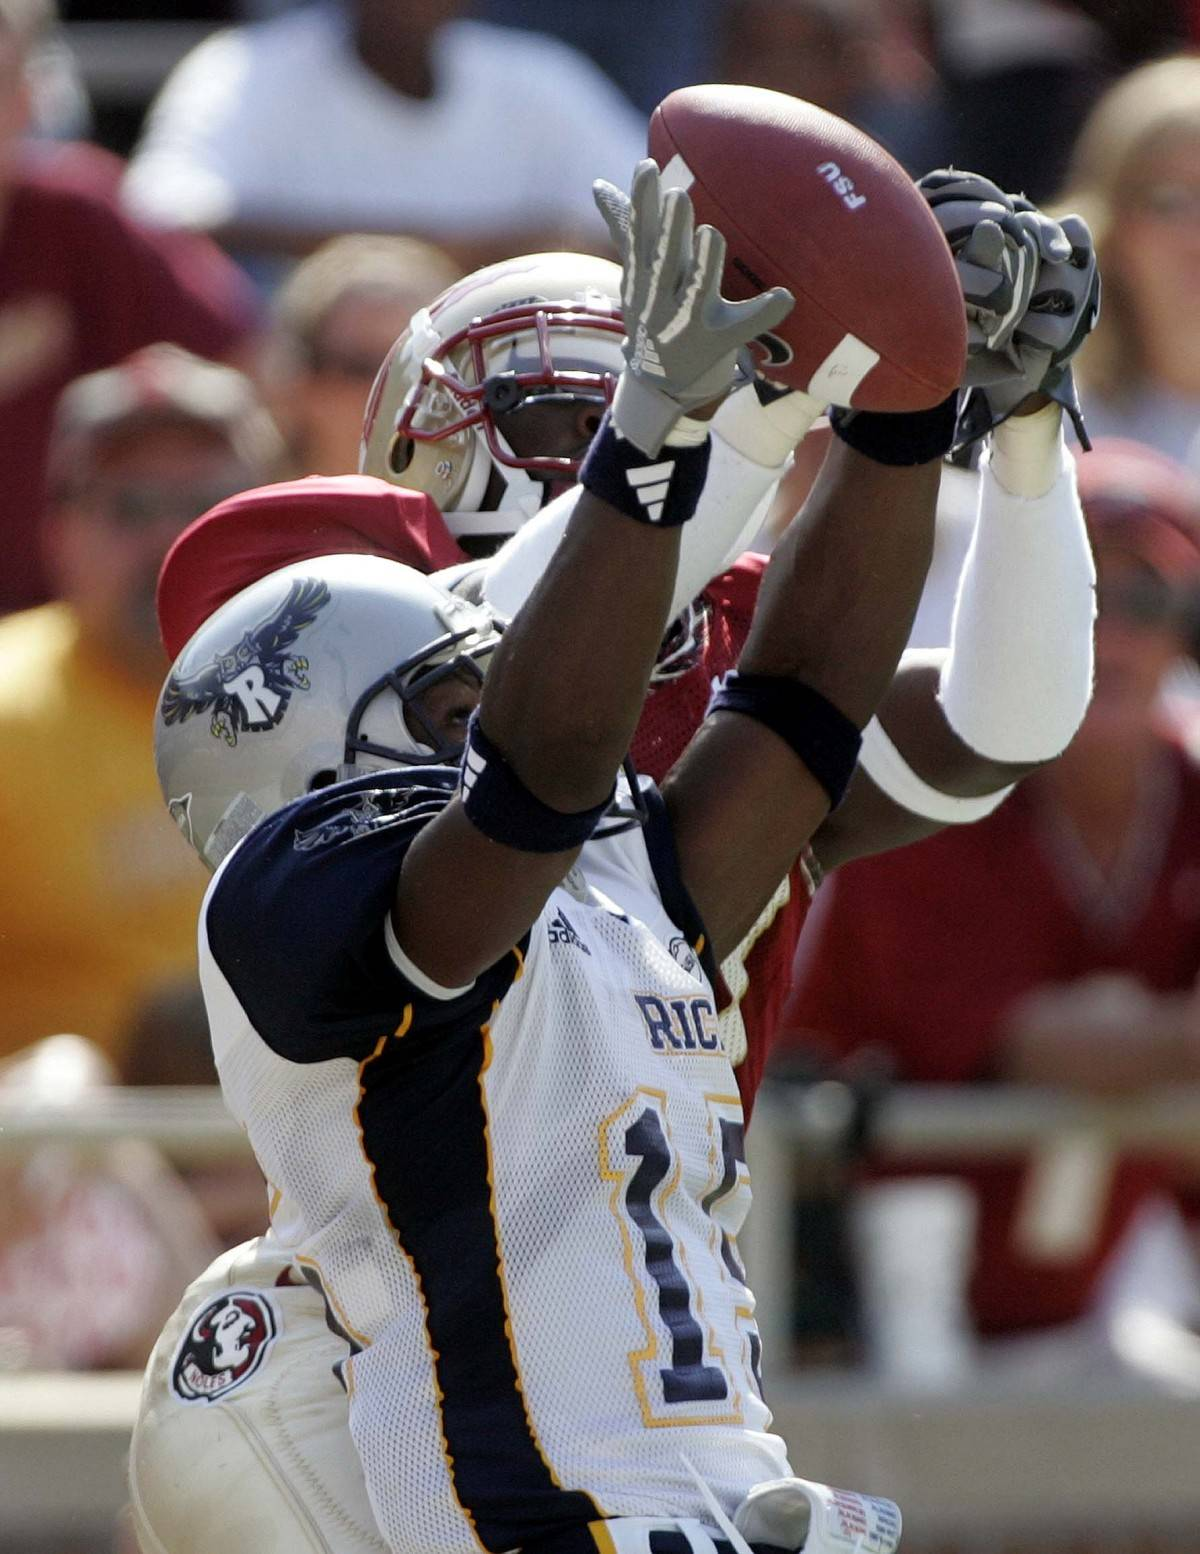 Rice defensive back Brandon King, foreground, knocks the ball away from Florida State receiver Greg Carr during the first quarter of an NCAA football game, Saturday, Sept. 23, 2006, in Tallahassee, Fla.(AP Photo/Phil Coale)